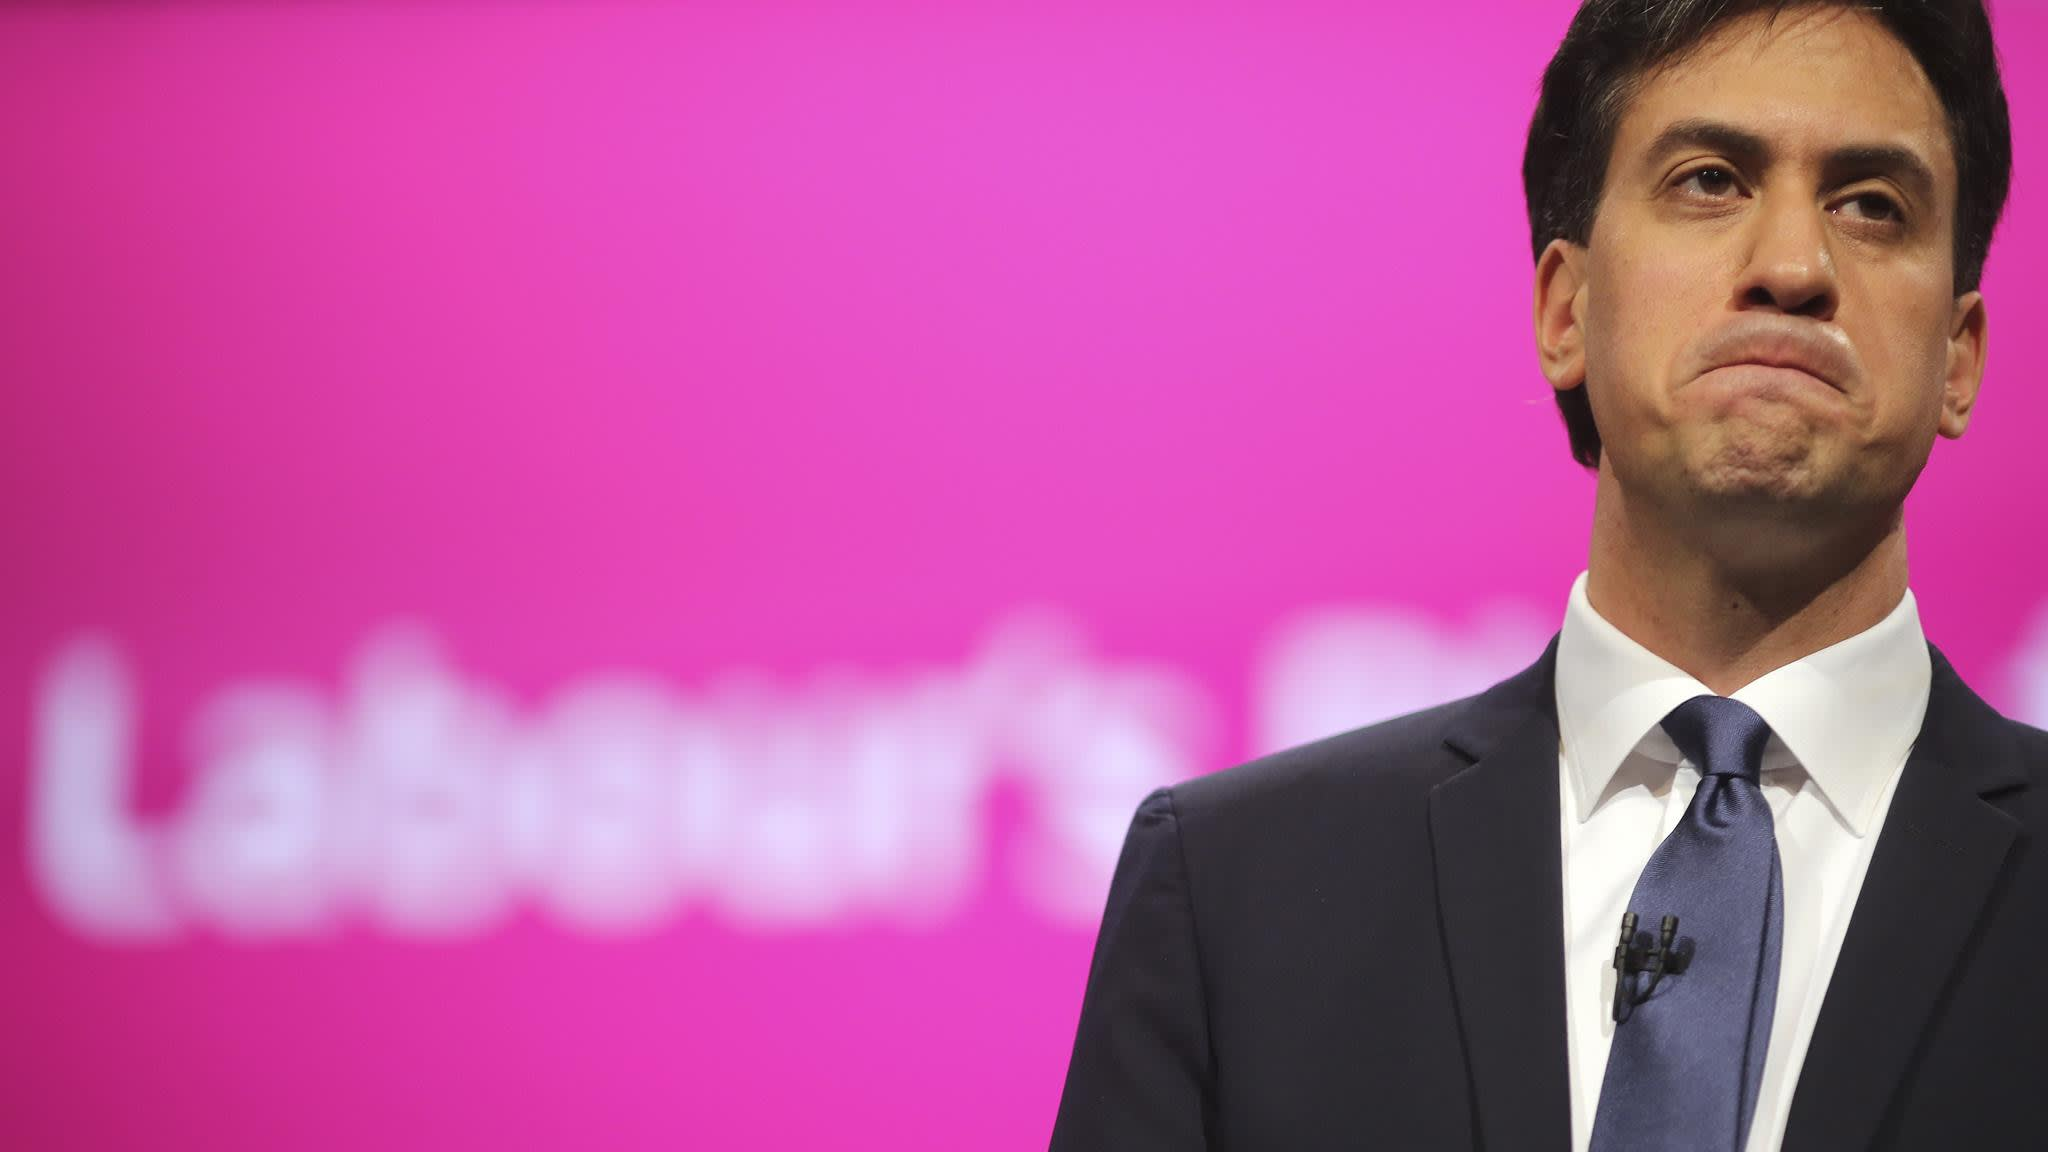 Miliband seeks to shore up leadership as poll puts Tories ahead | Financial Times